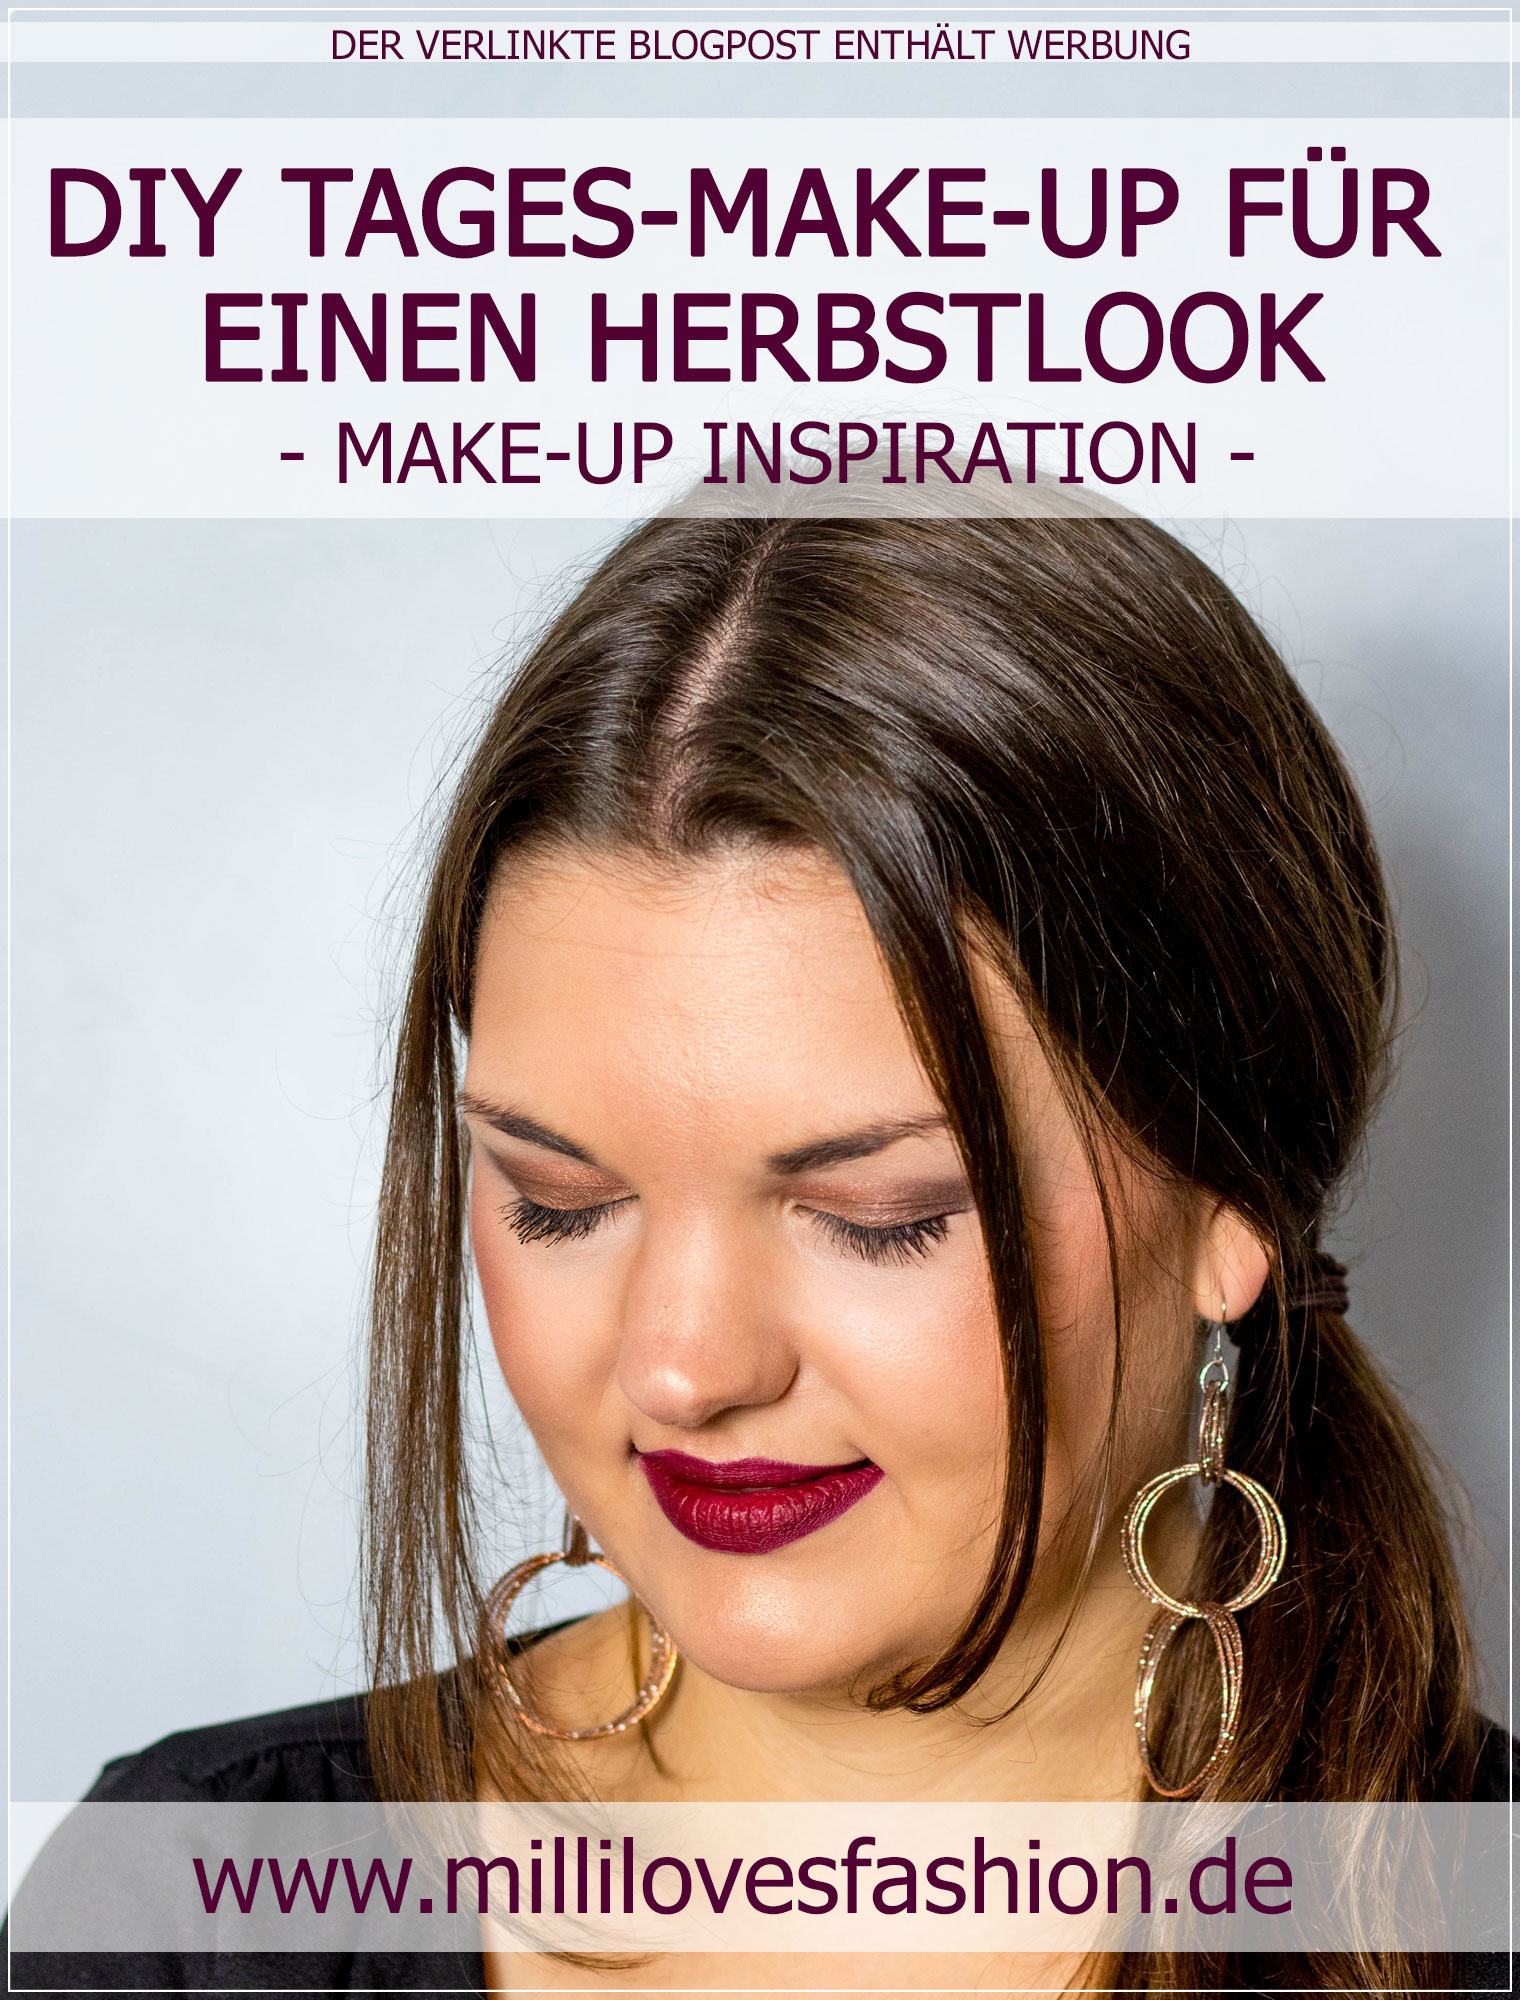 Herbst-Make-Up, Tages-Make-up, Herbstlook, Herbstfarben, Make-Up Tutorial, Beauty Blog, Beautybloggerin, Ruhrgebiet